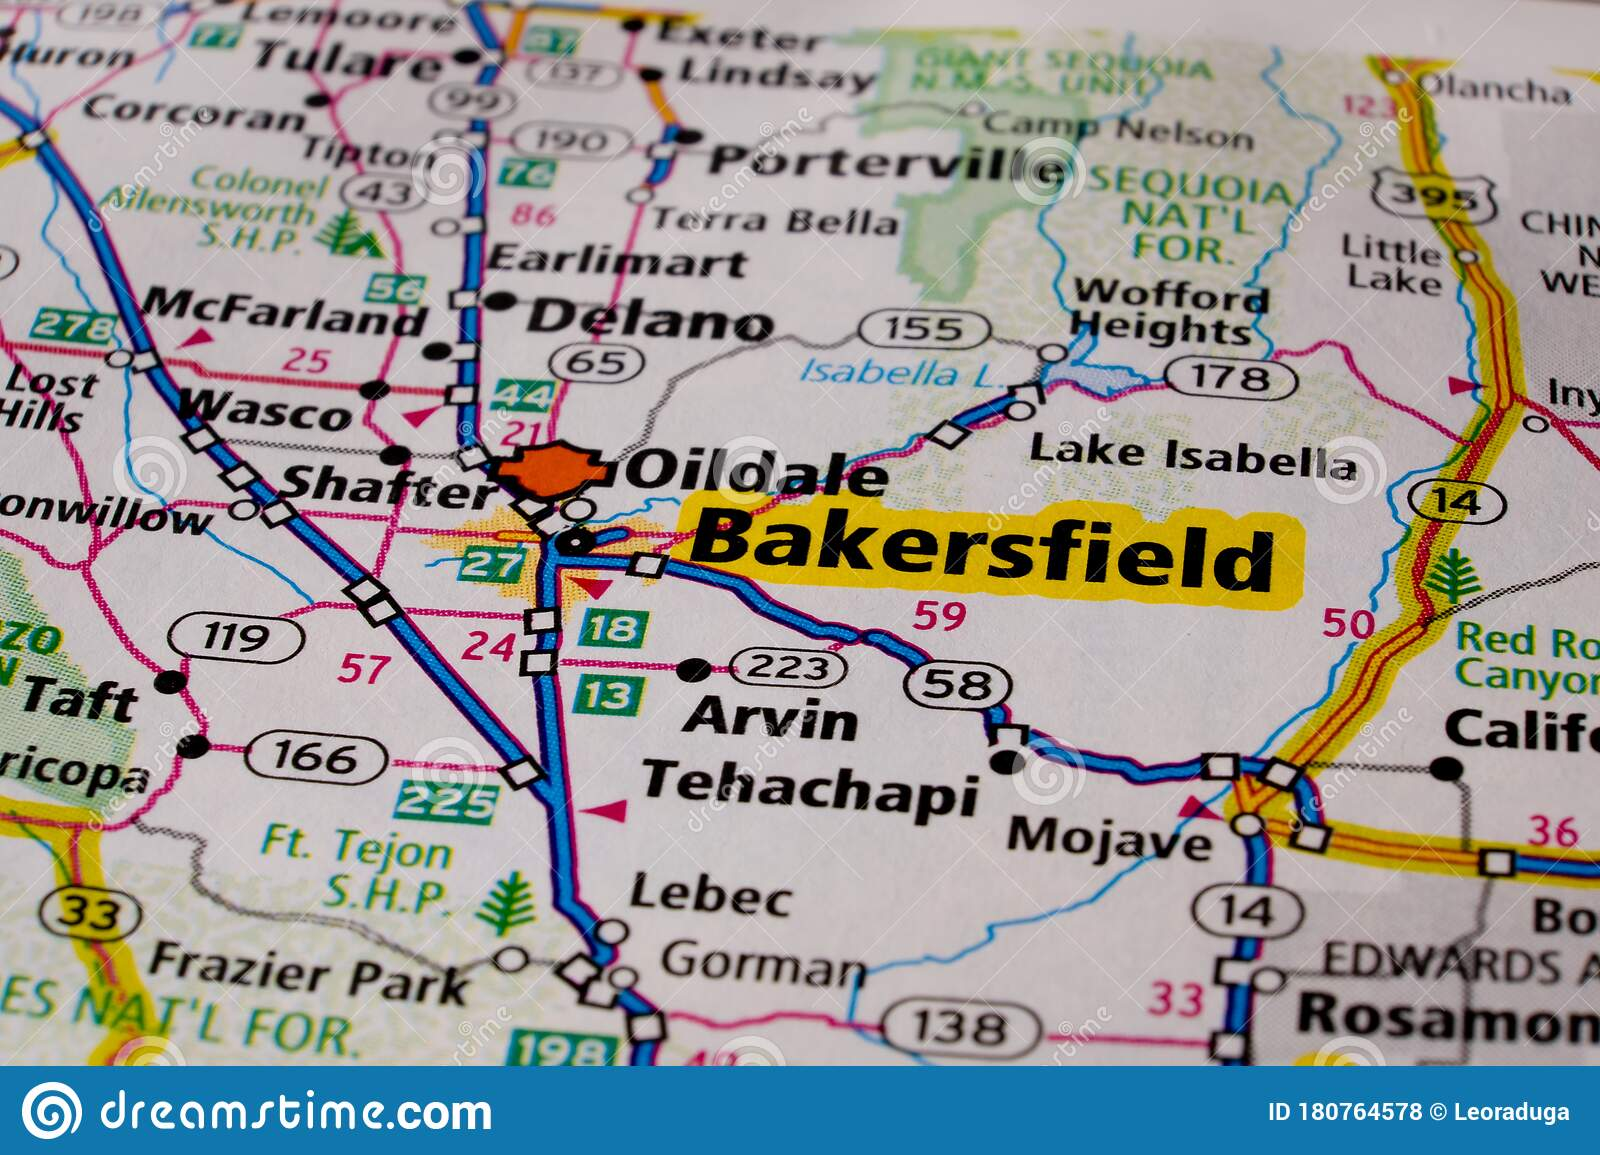 Bakersfield City On Usa Travel Map Stock Photo Image Of Cartography Closeup 180764578